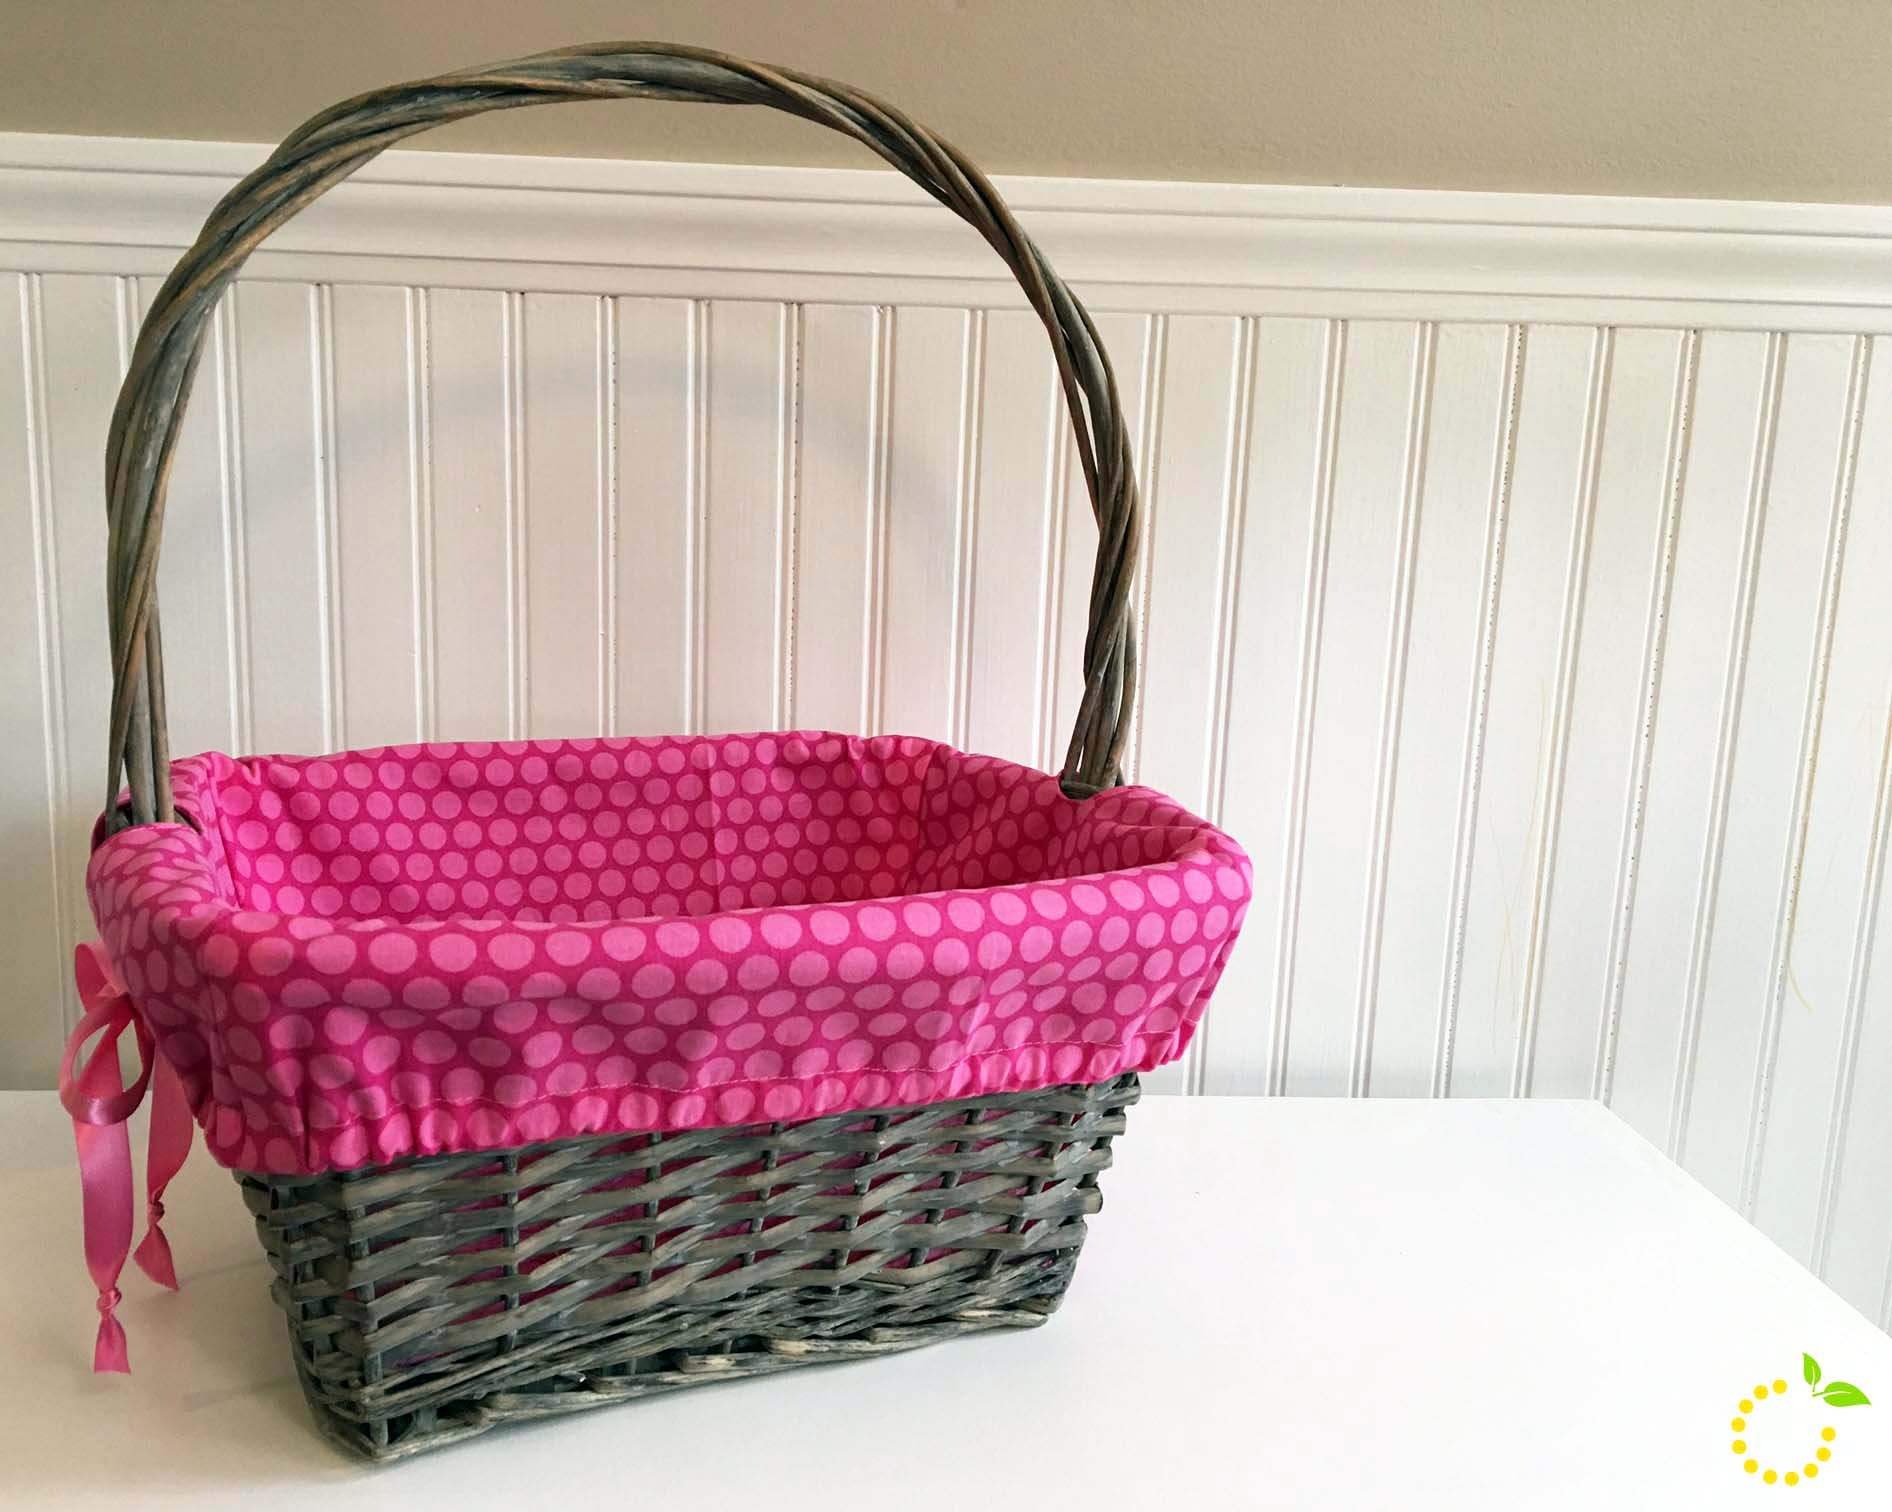 Basket Liner Tutorial Sweet Lemon